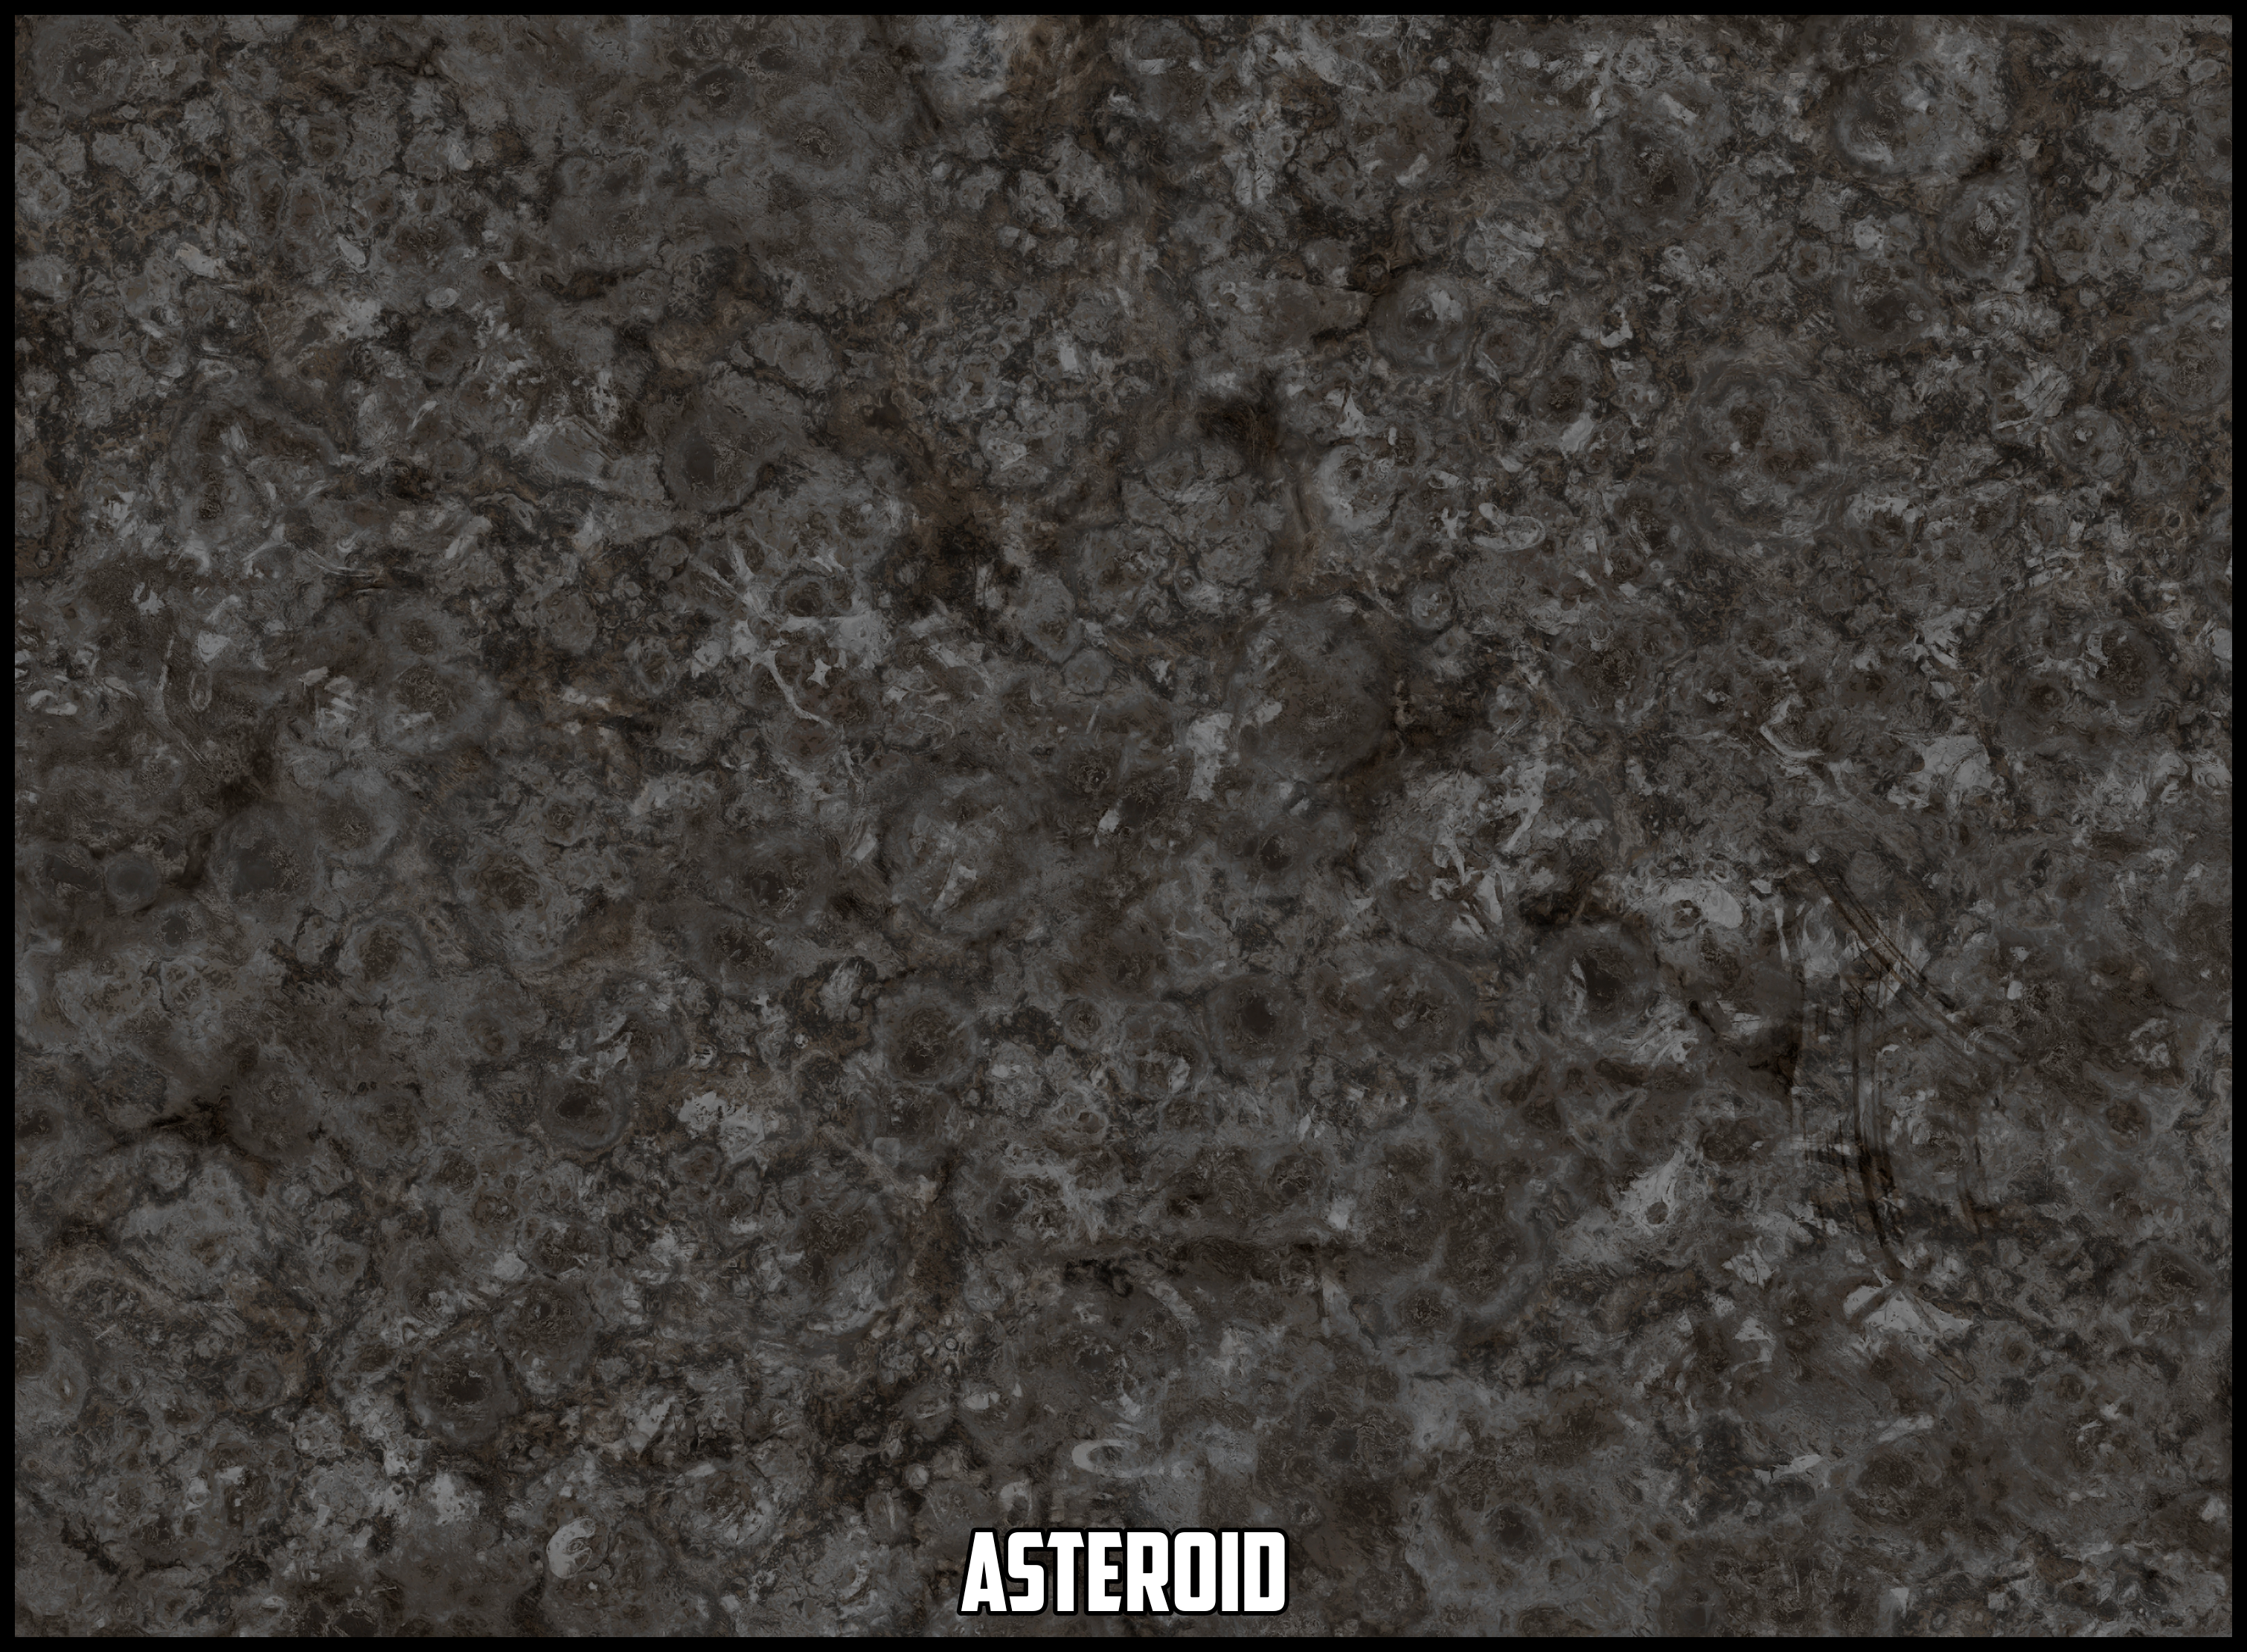 texture-asteroid-example.png